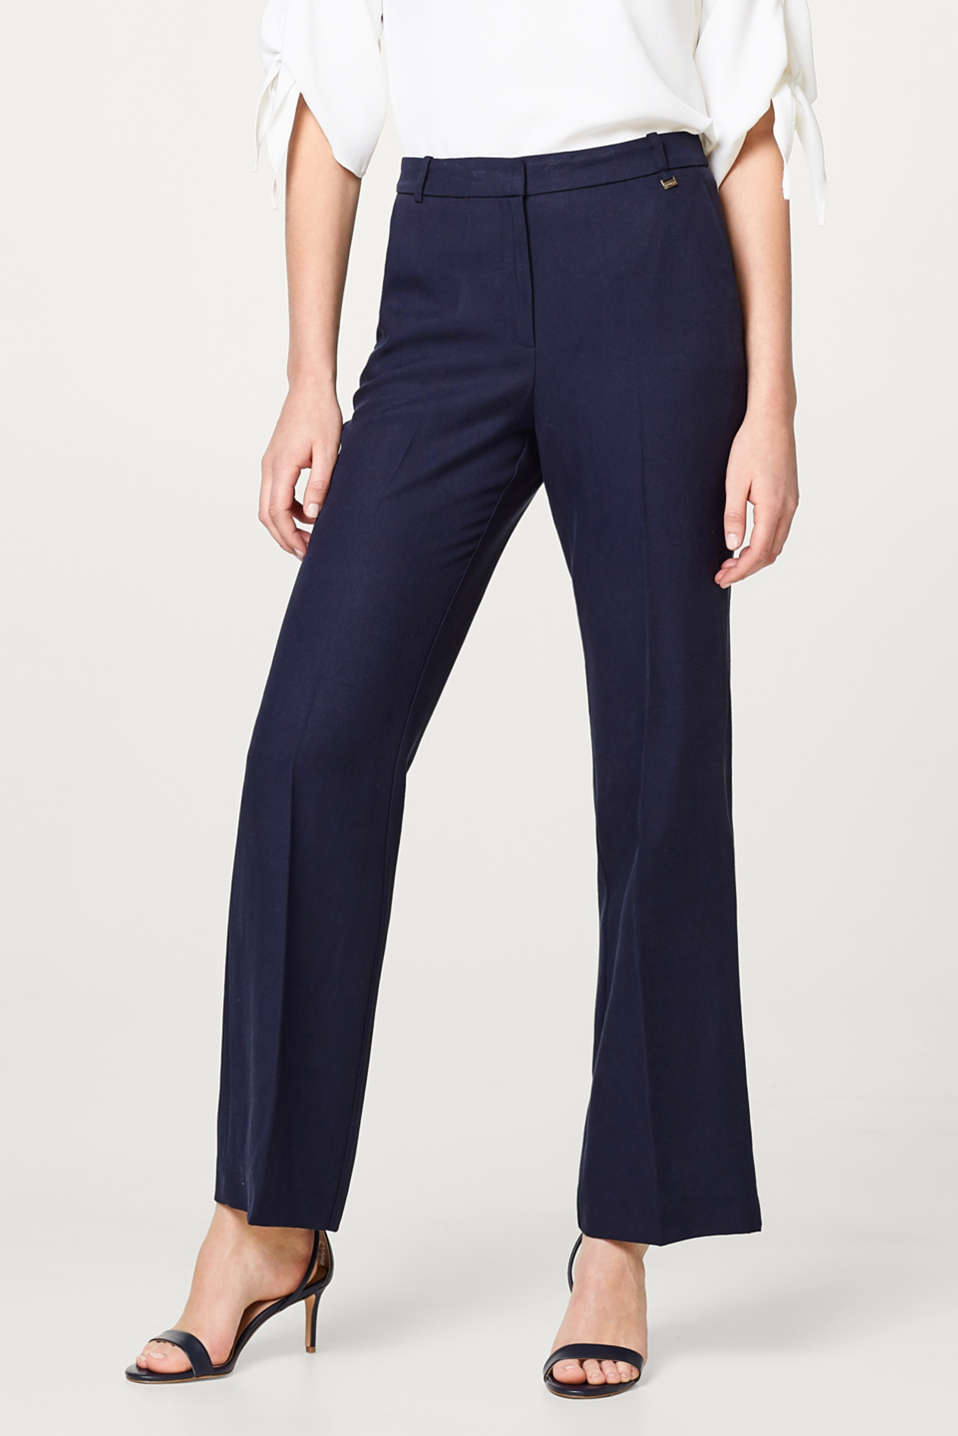 Esprit - Modern bootcut trousers in textured lyocell